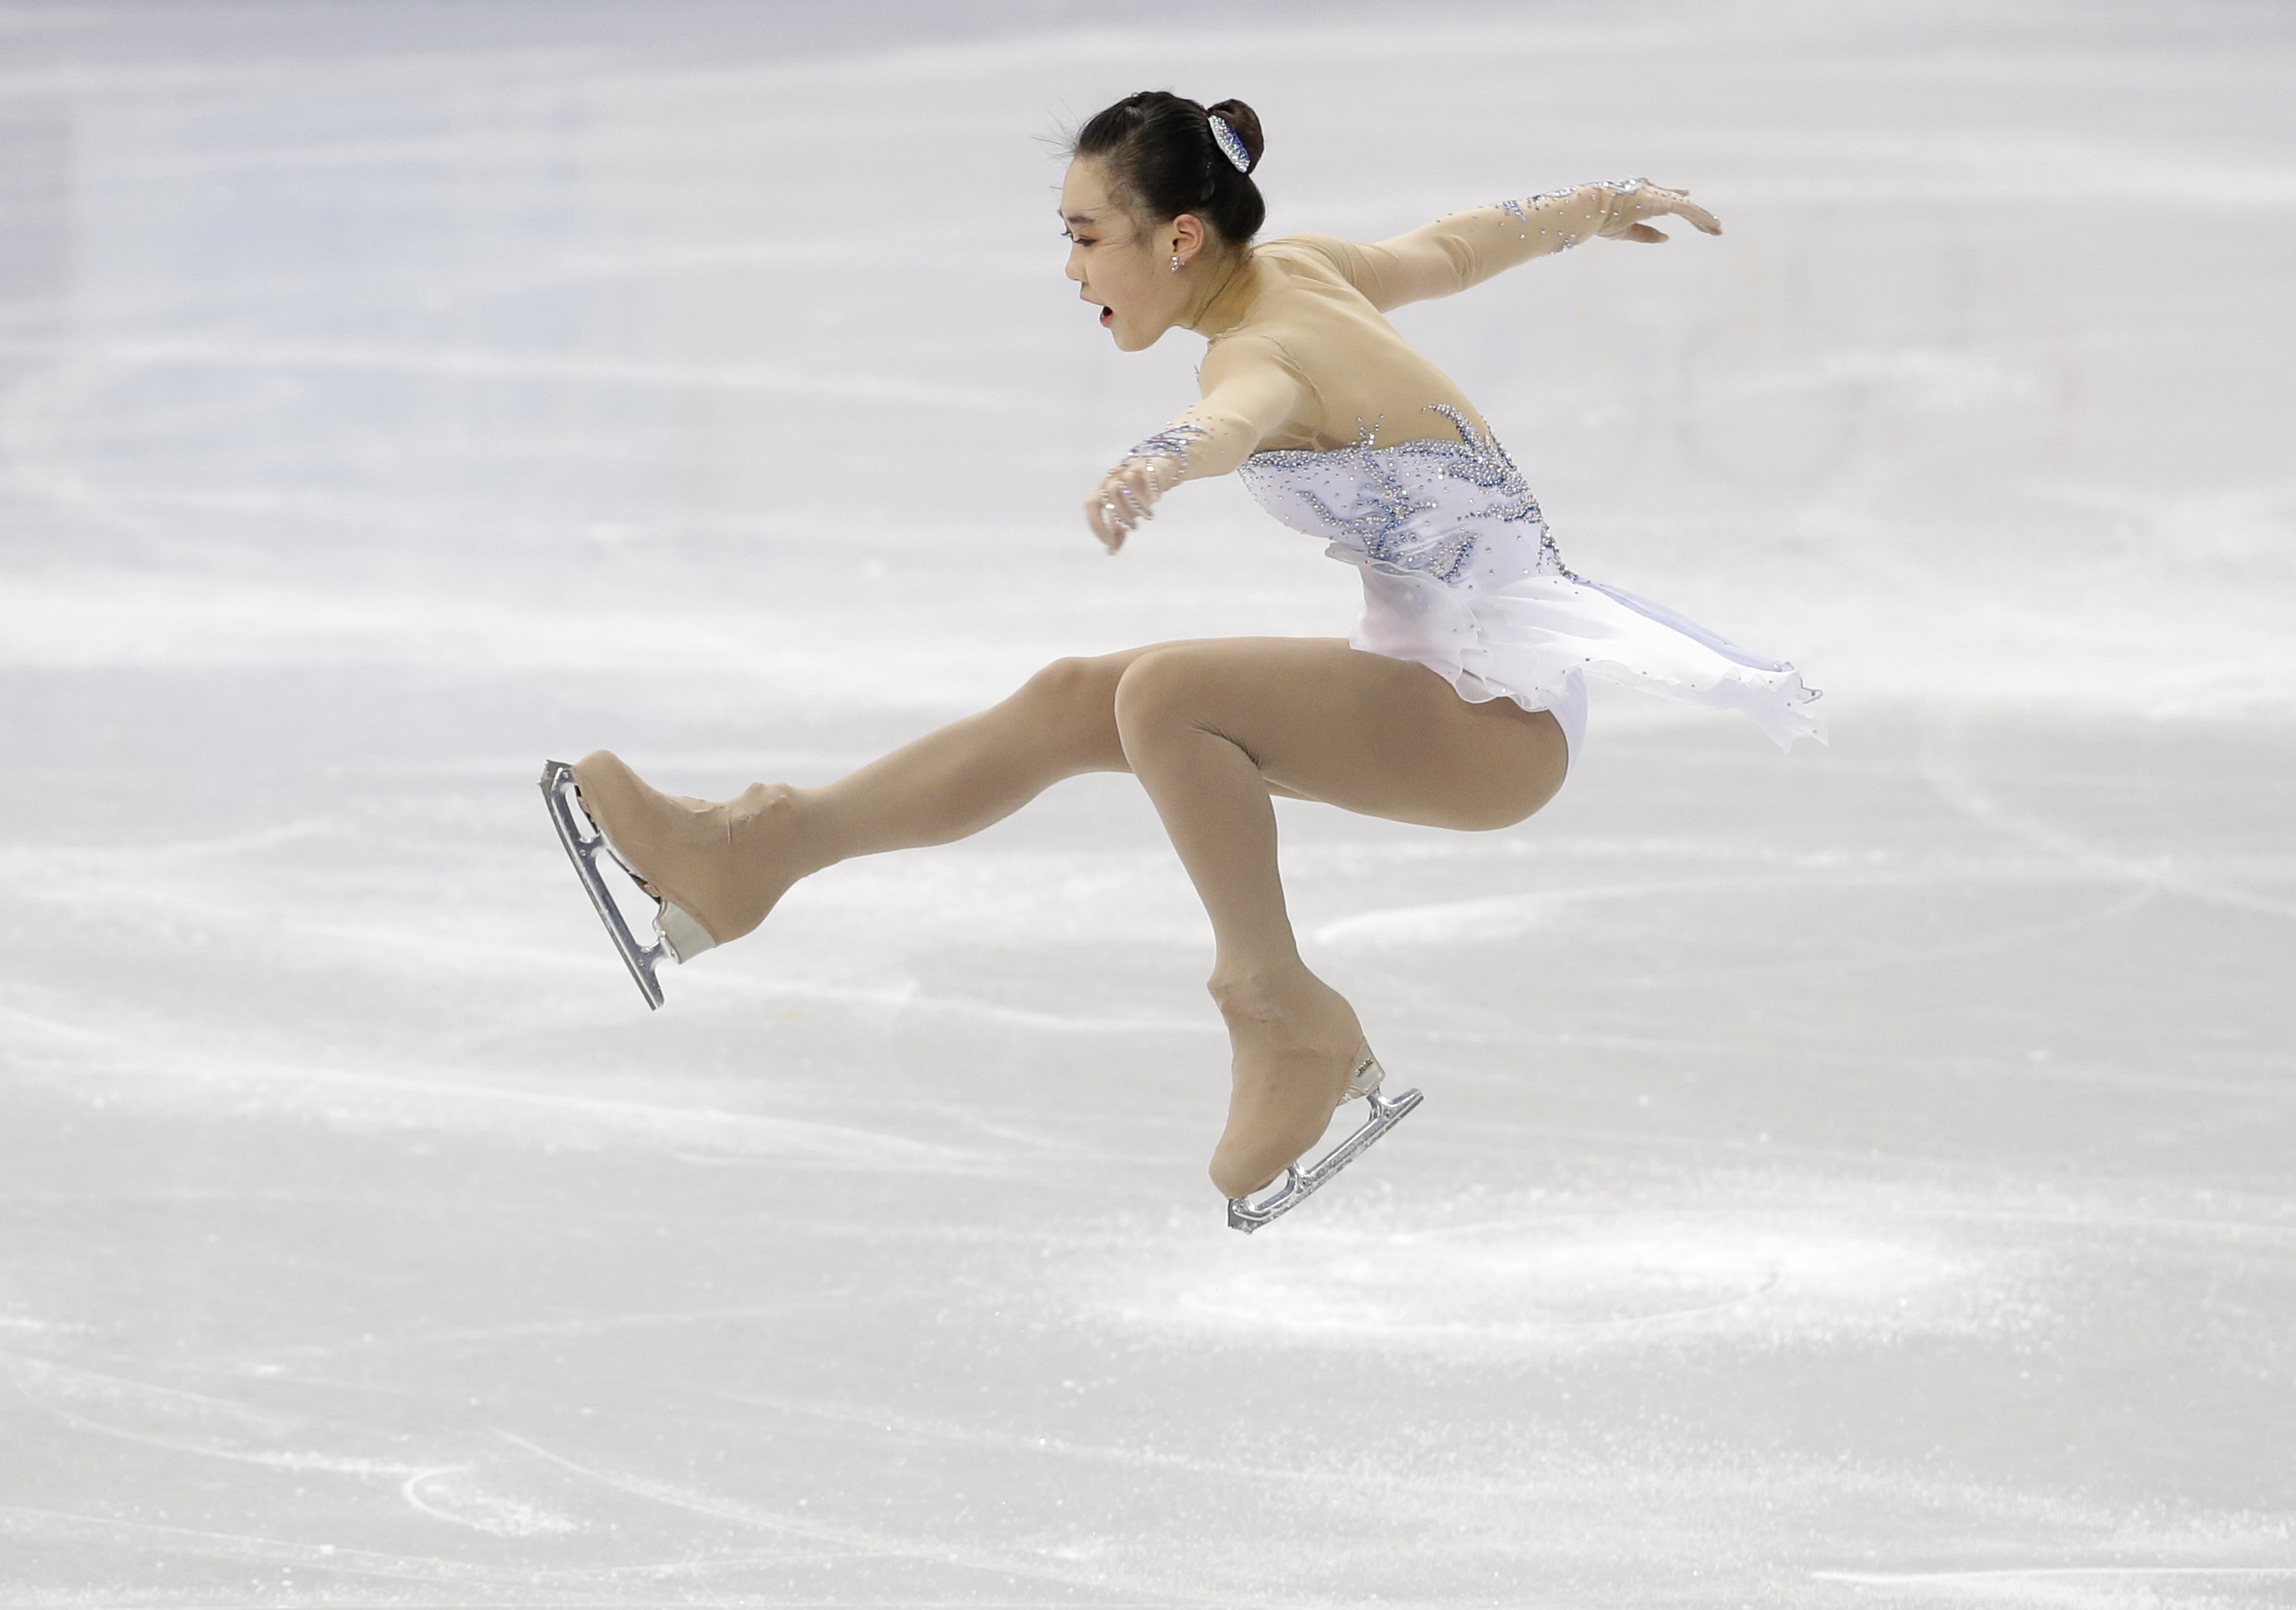 Park So-Youn of South Korea competes in the women's short program figure skating competition at the Iceberg Skating Palace during the 2014 Winter Olympics, Wednesday, Feb. 19, 2014, in Sochi, Russia. (AP Photo/Darron Cummings)